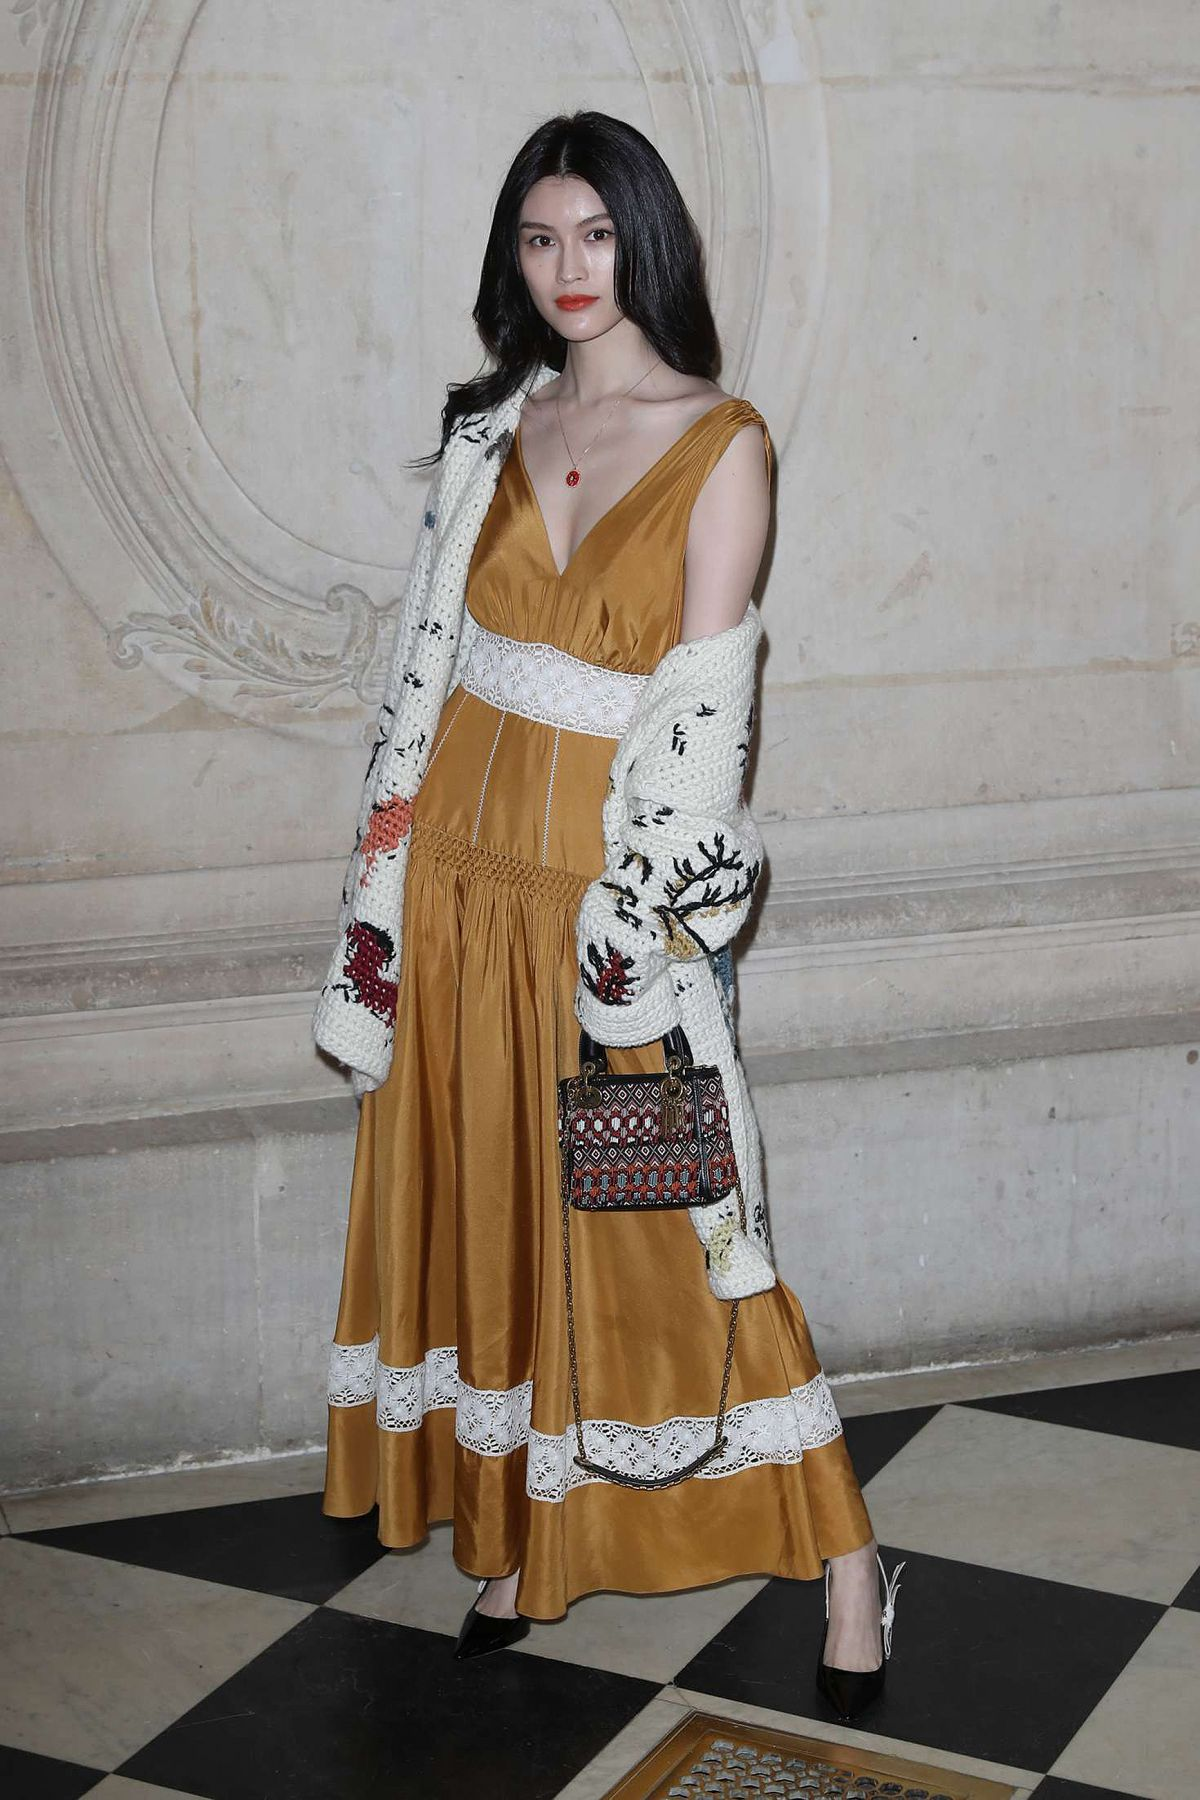 Sui he at cristian dior show at spring summer 2018 haute for Haute couture week